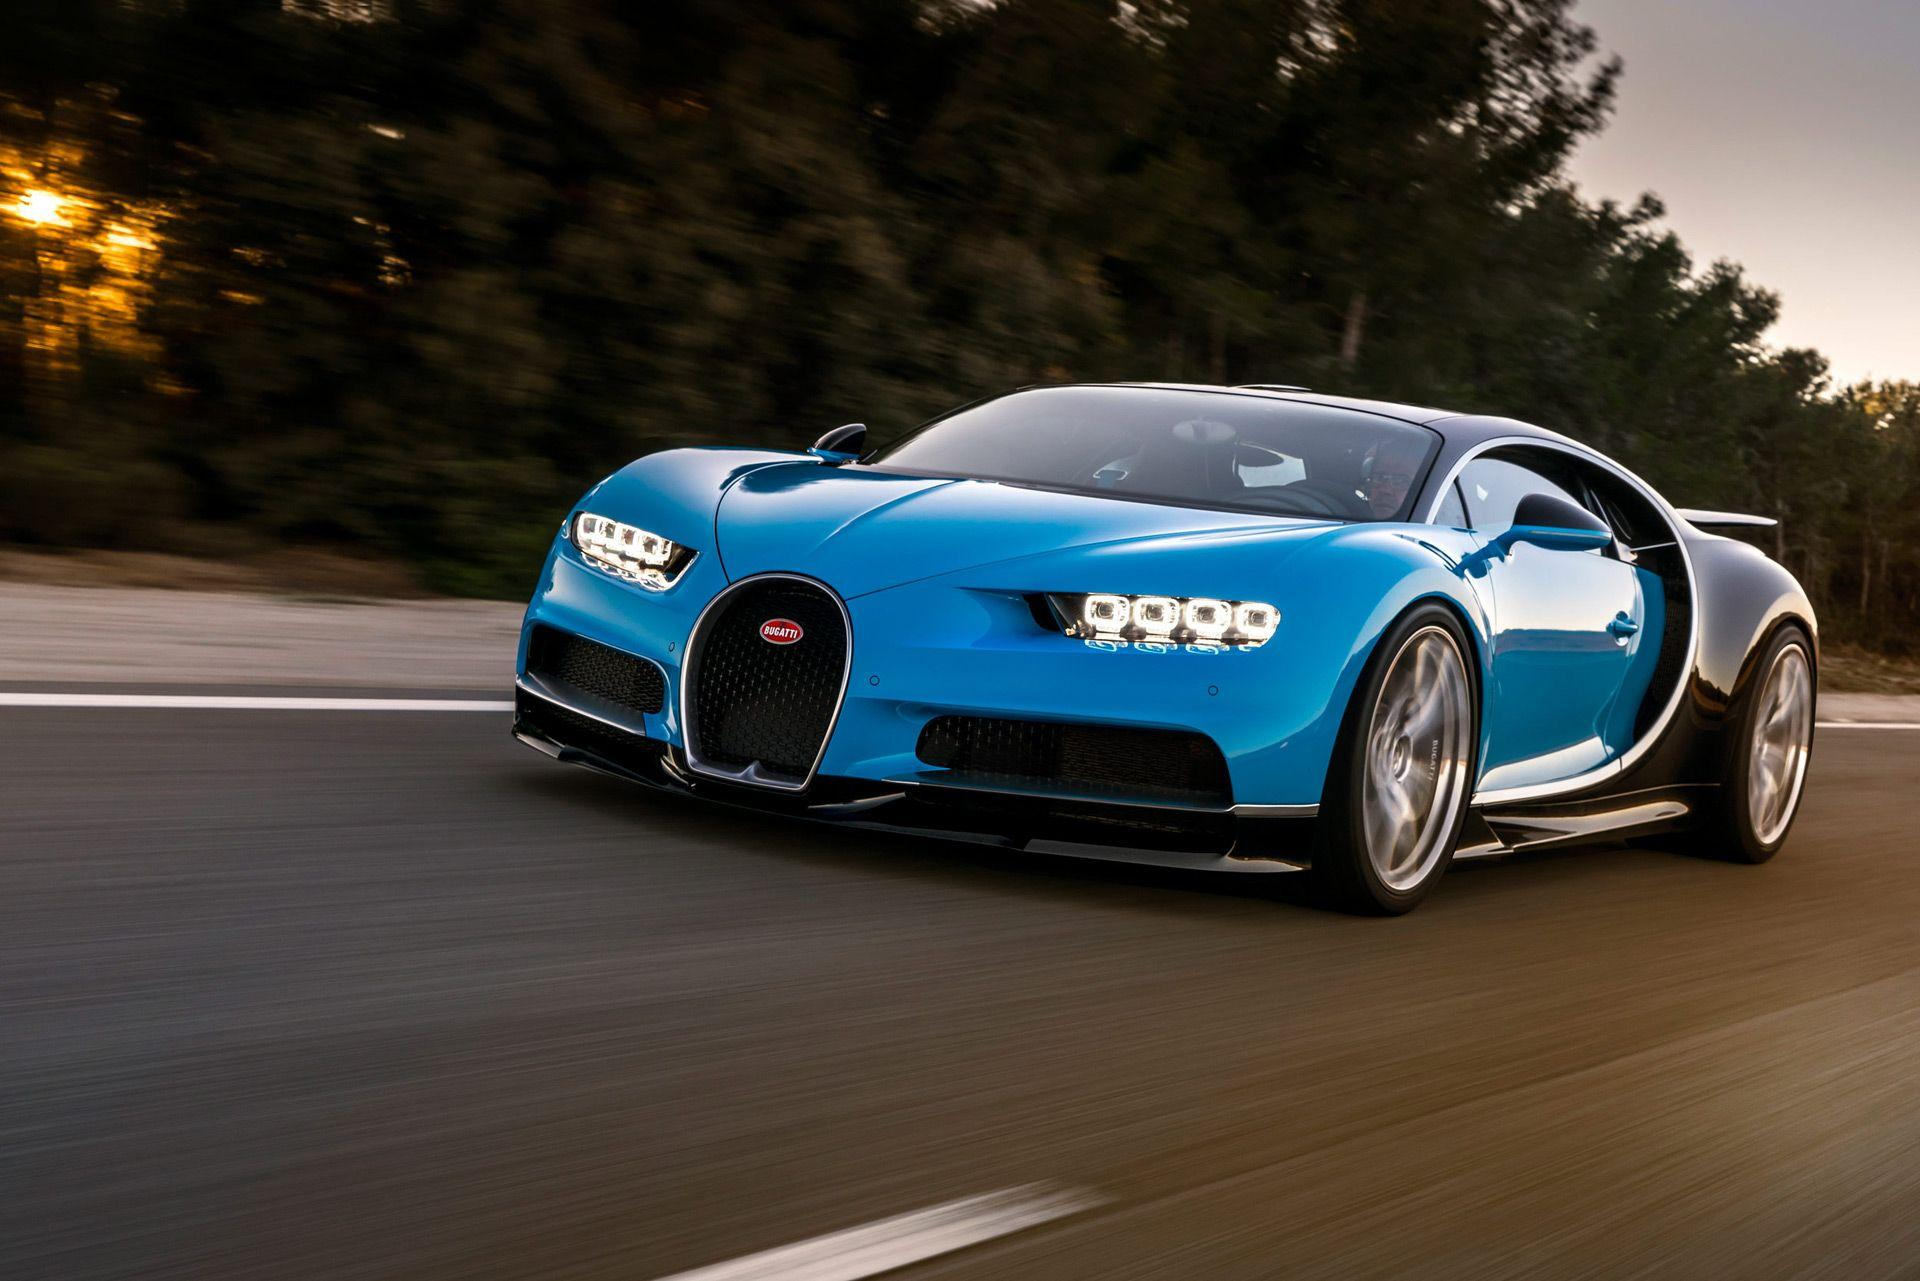 Update: Bugatti Chiron's top speed to remain capped at 261 mph